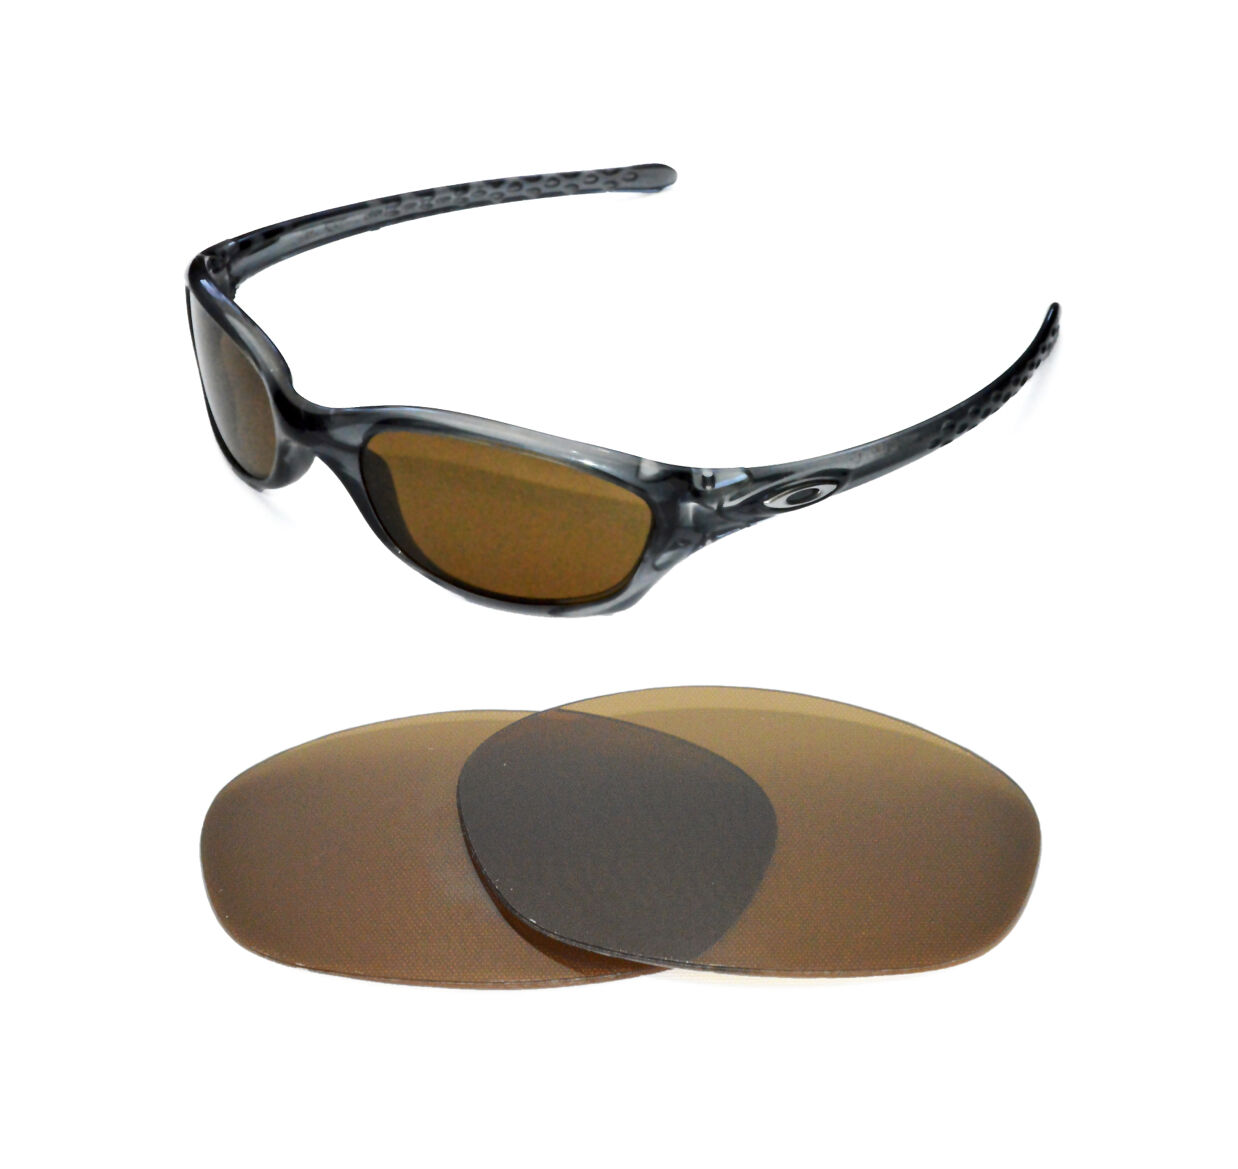 2b6f72ca32b Details about NEW POLARIZED BRONZE REPLACEMENT LENS FOR OAKLEY FIVES 2.0  SUNGLASSES